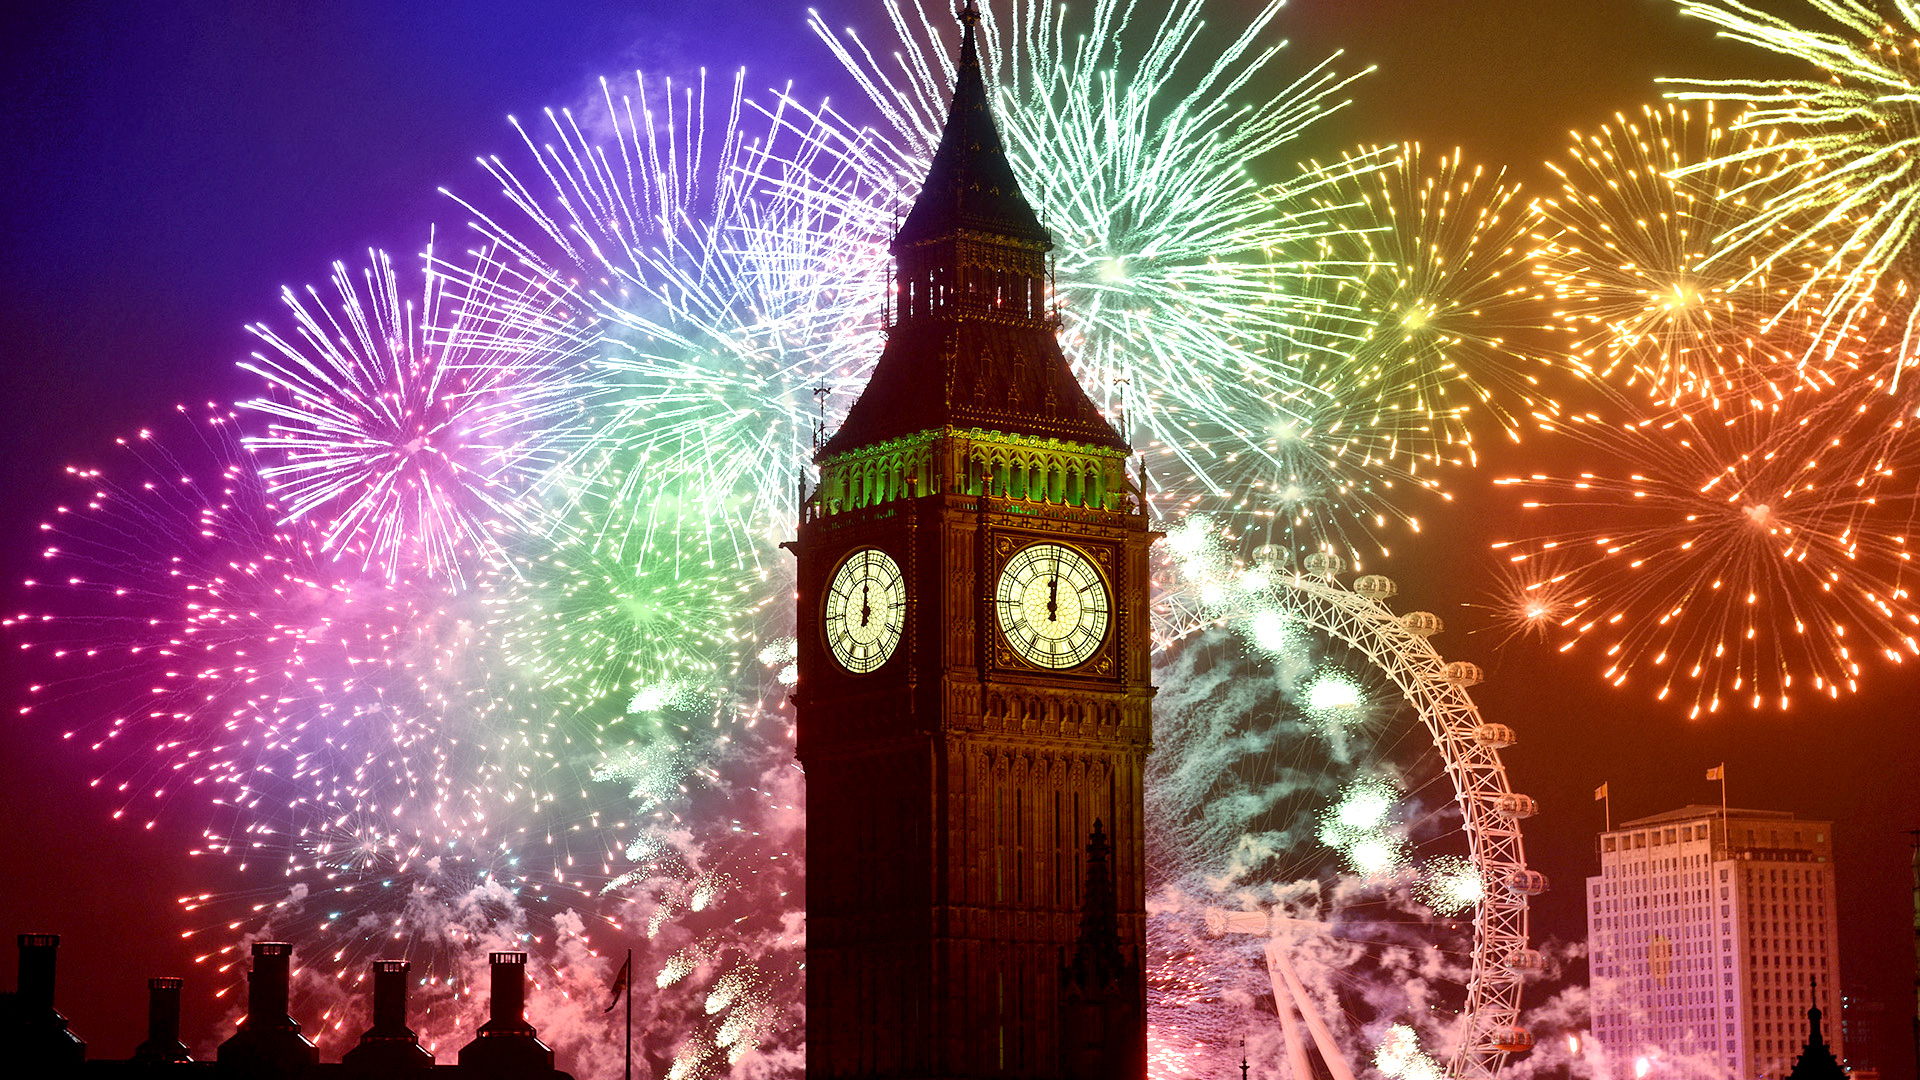 Big ben with colorful fireworks in London